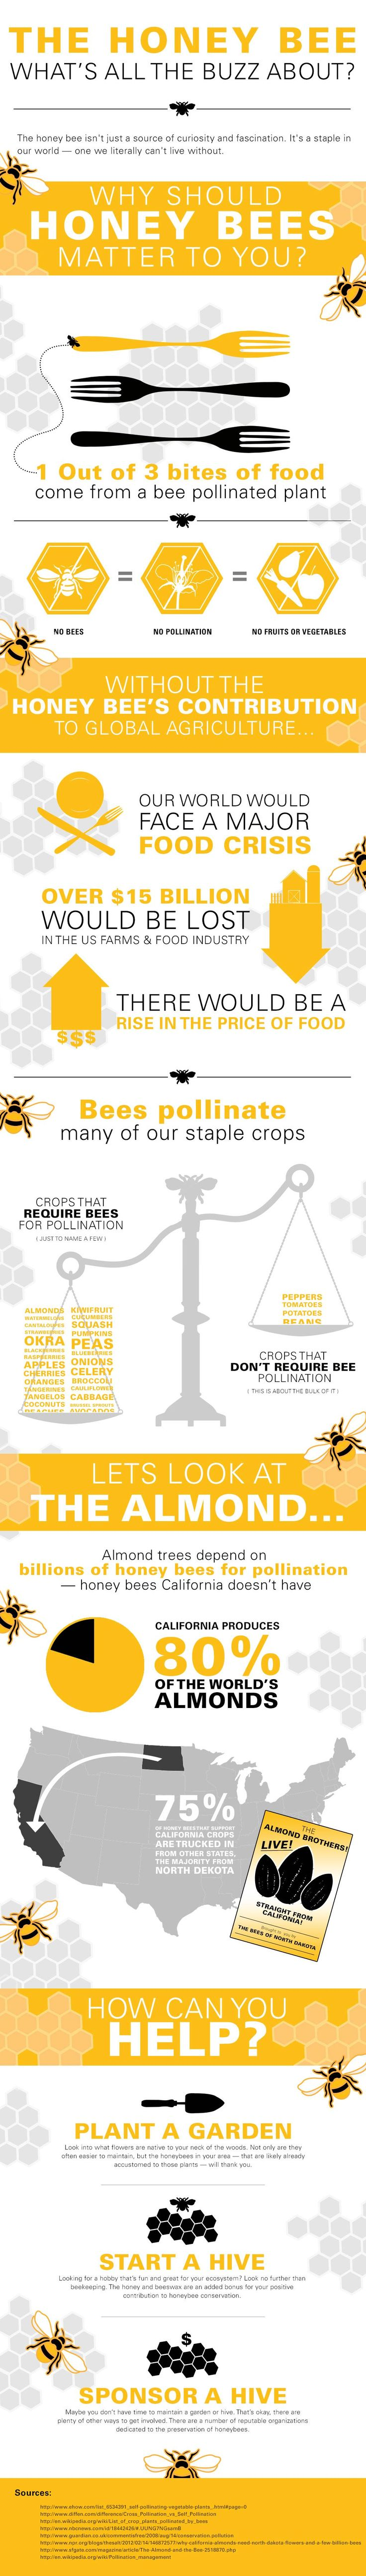 The Honey Bee: An Infographic | The Orkin Ecologist